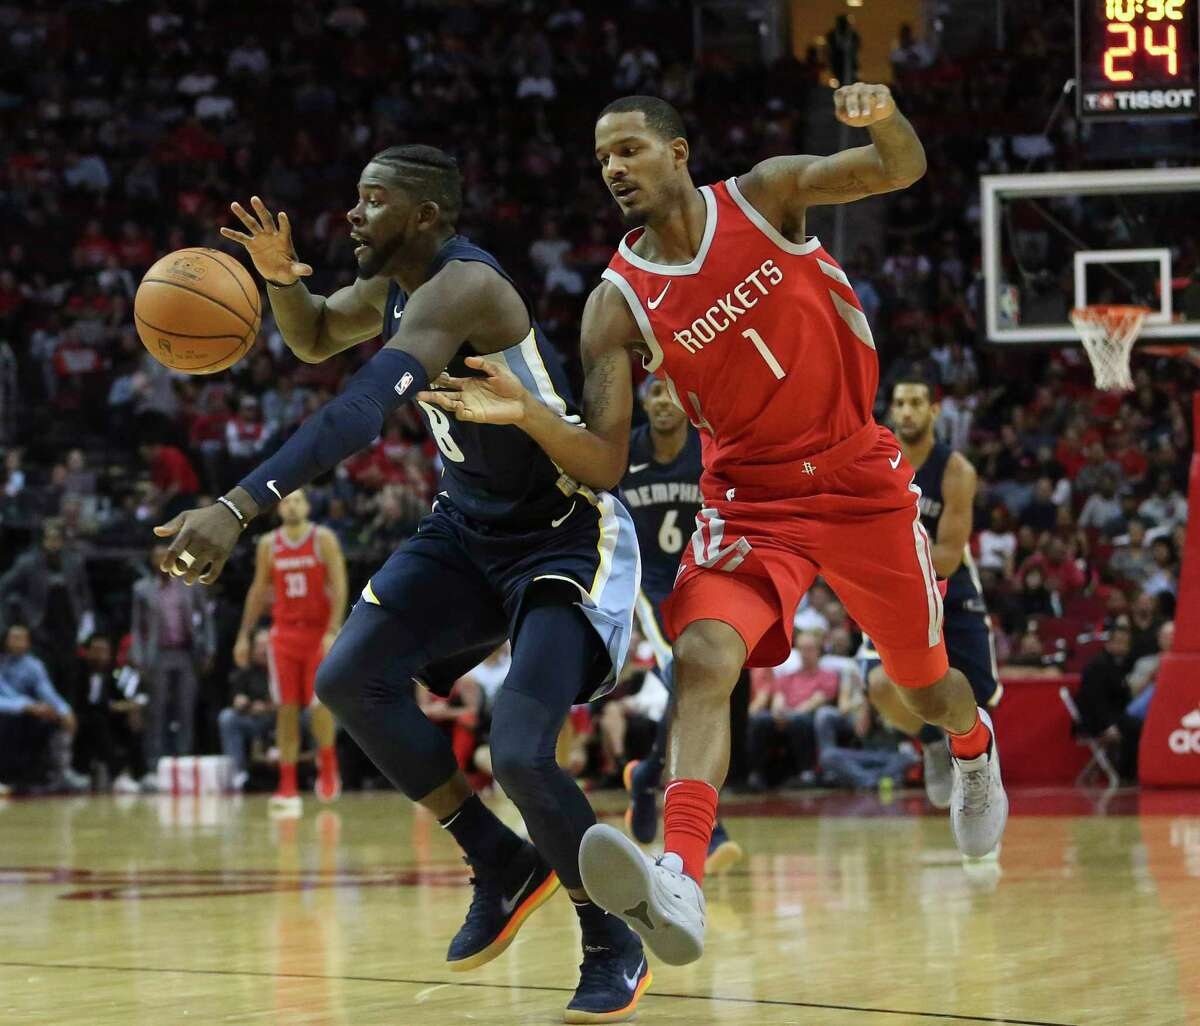 Houston Rockets forward Trevor Ariza (1) tries to steal the ball from Memphis Grizzlies forward James Ennis III (8) during the fhourth quarter of the NBA game at Toyota Center Monday, Oct. 23, 2017, in Houston. The Houston Rockets lost to the Memphis Grizzlies 98-90.